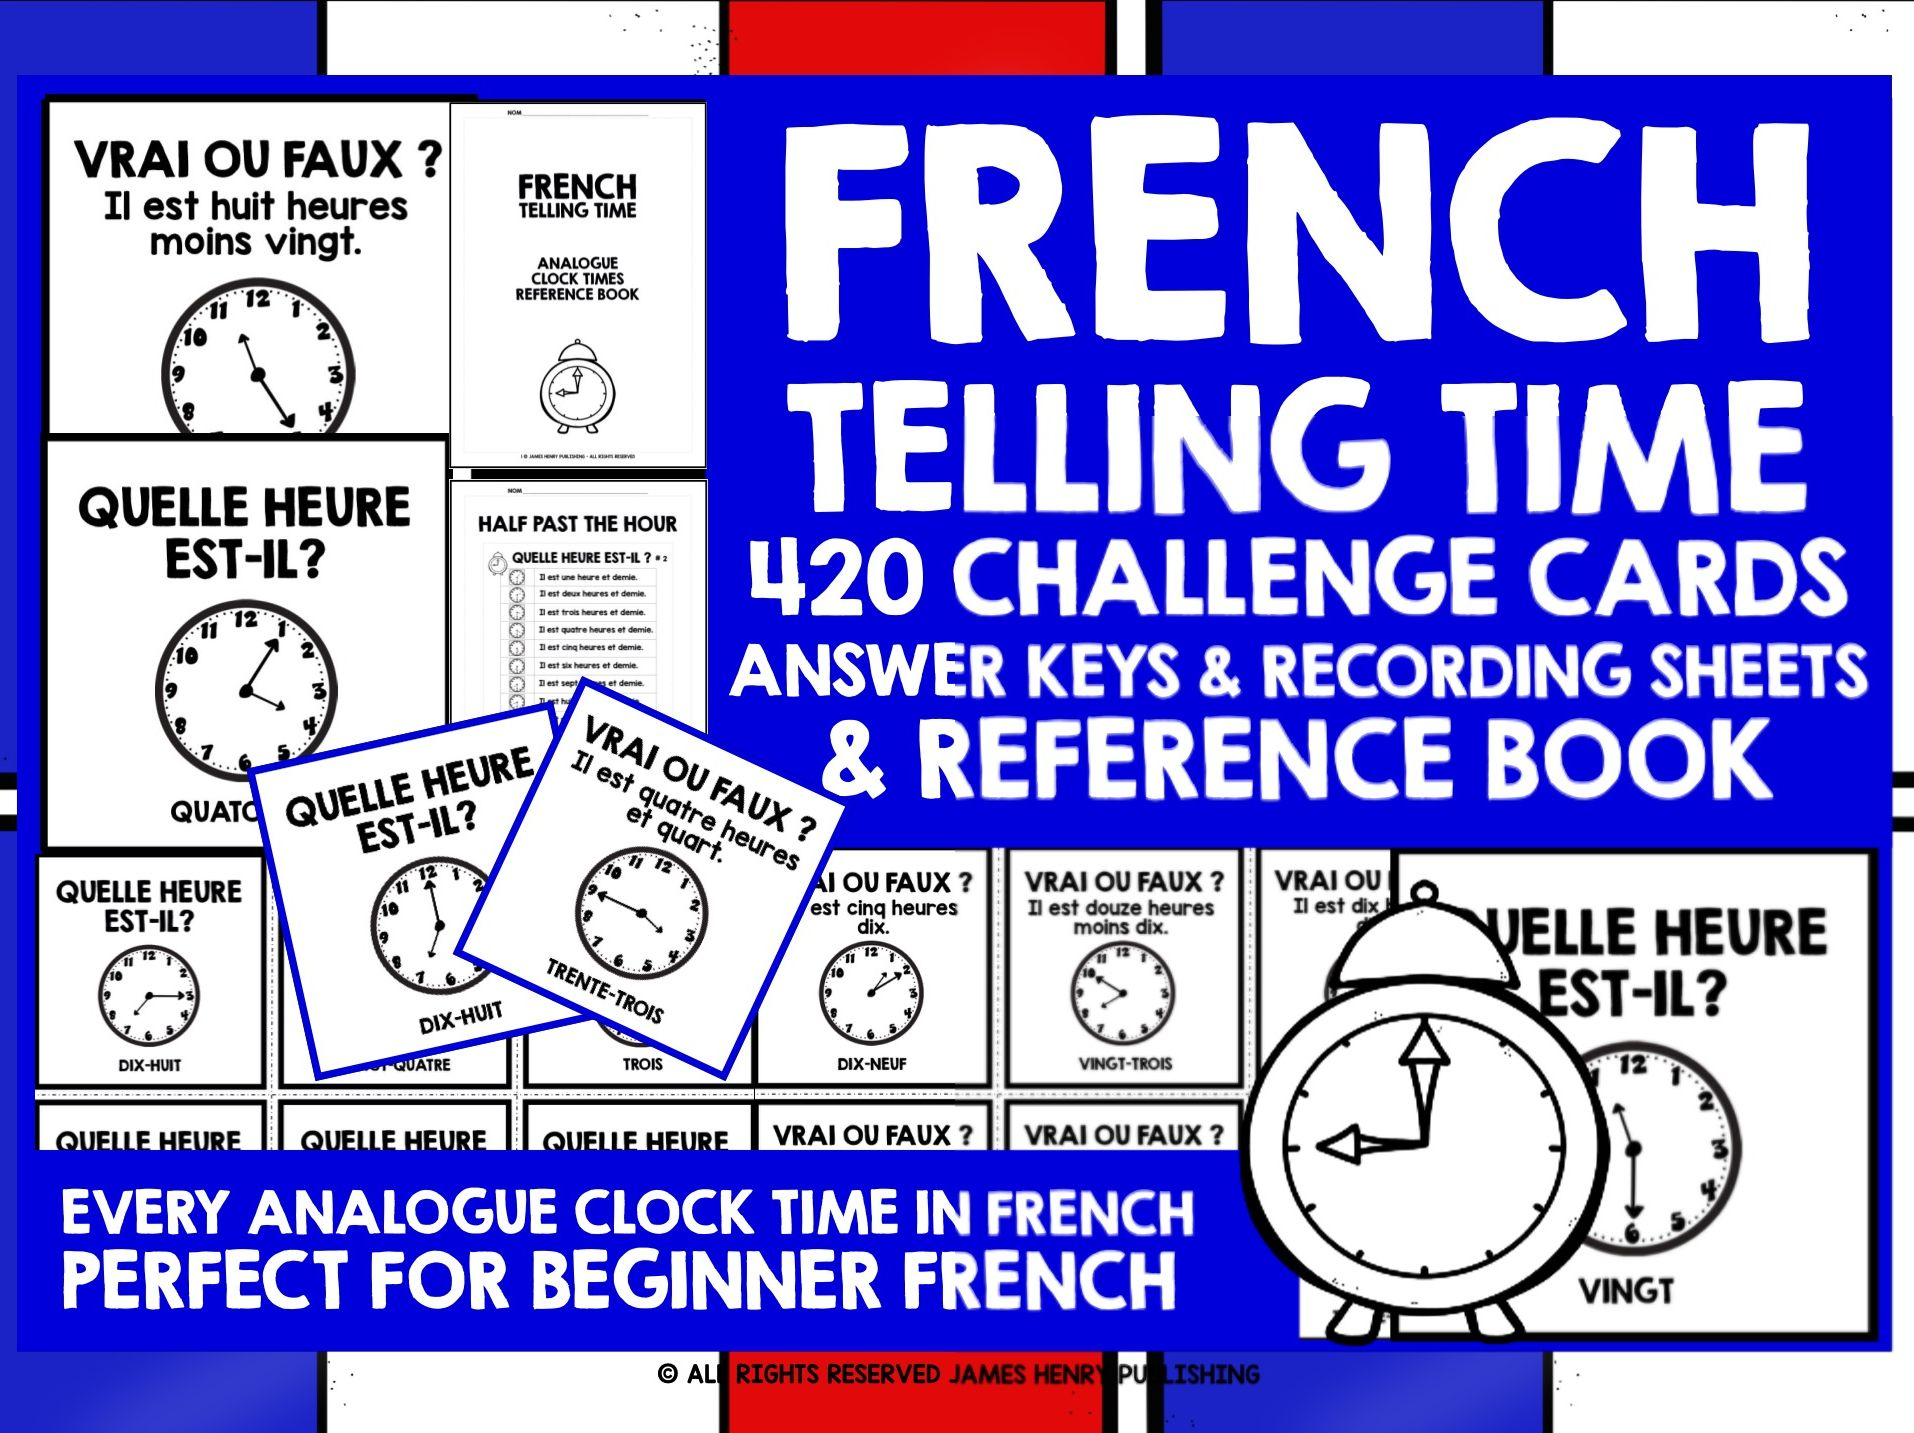 FRENCH TIME CHALLENGE CARDS & REFERENCE BOOK